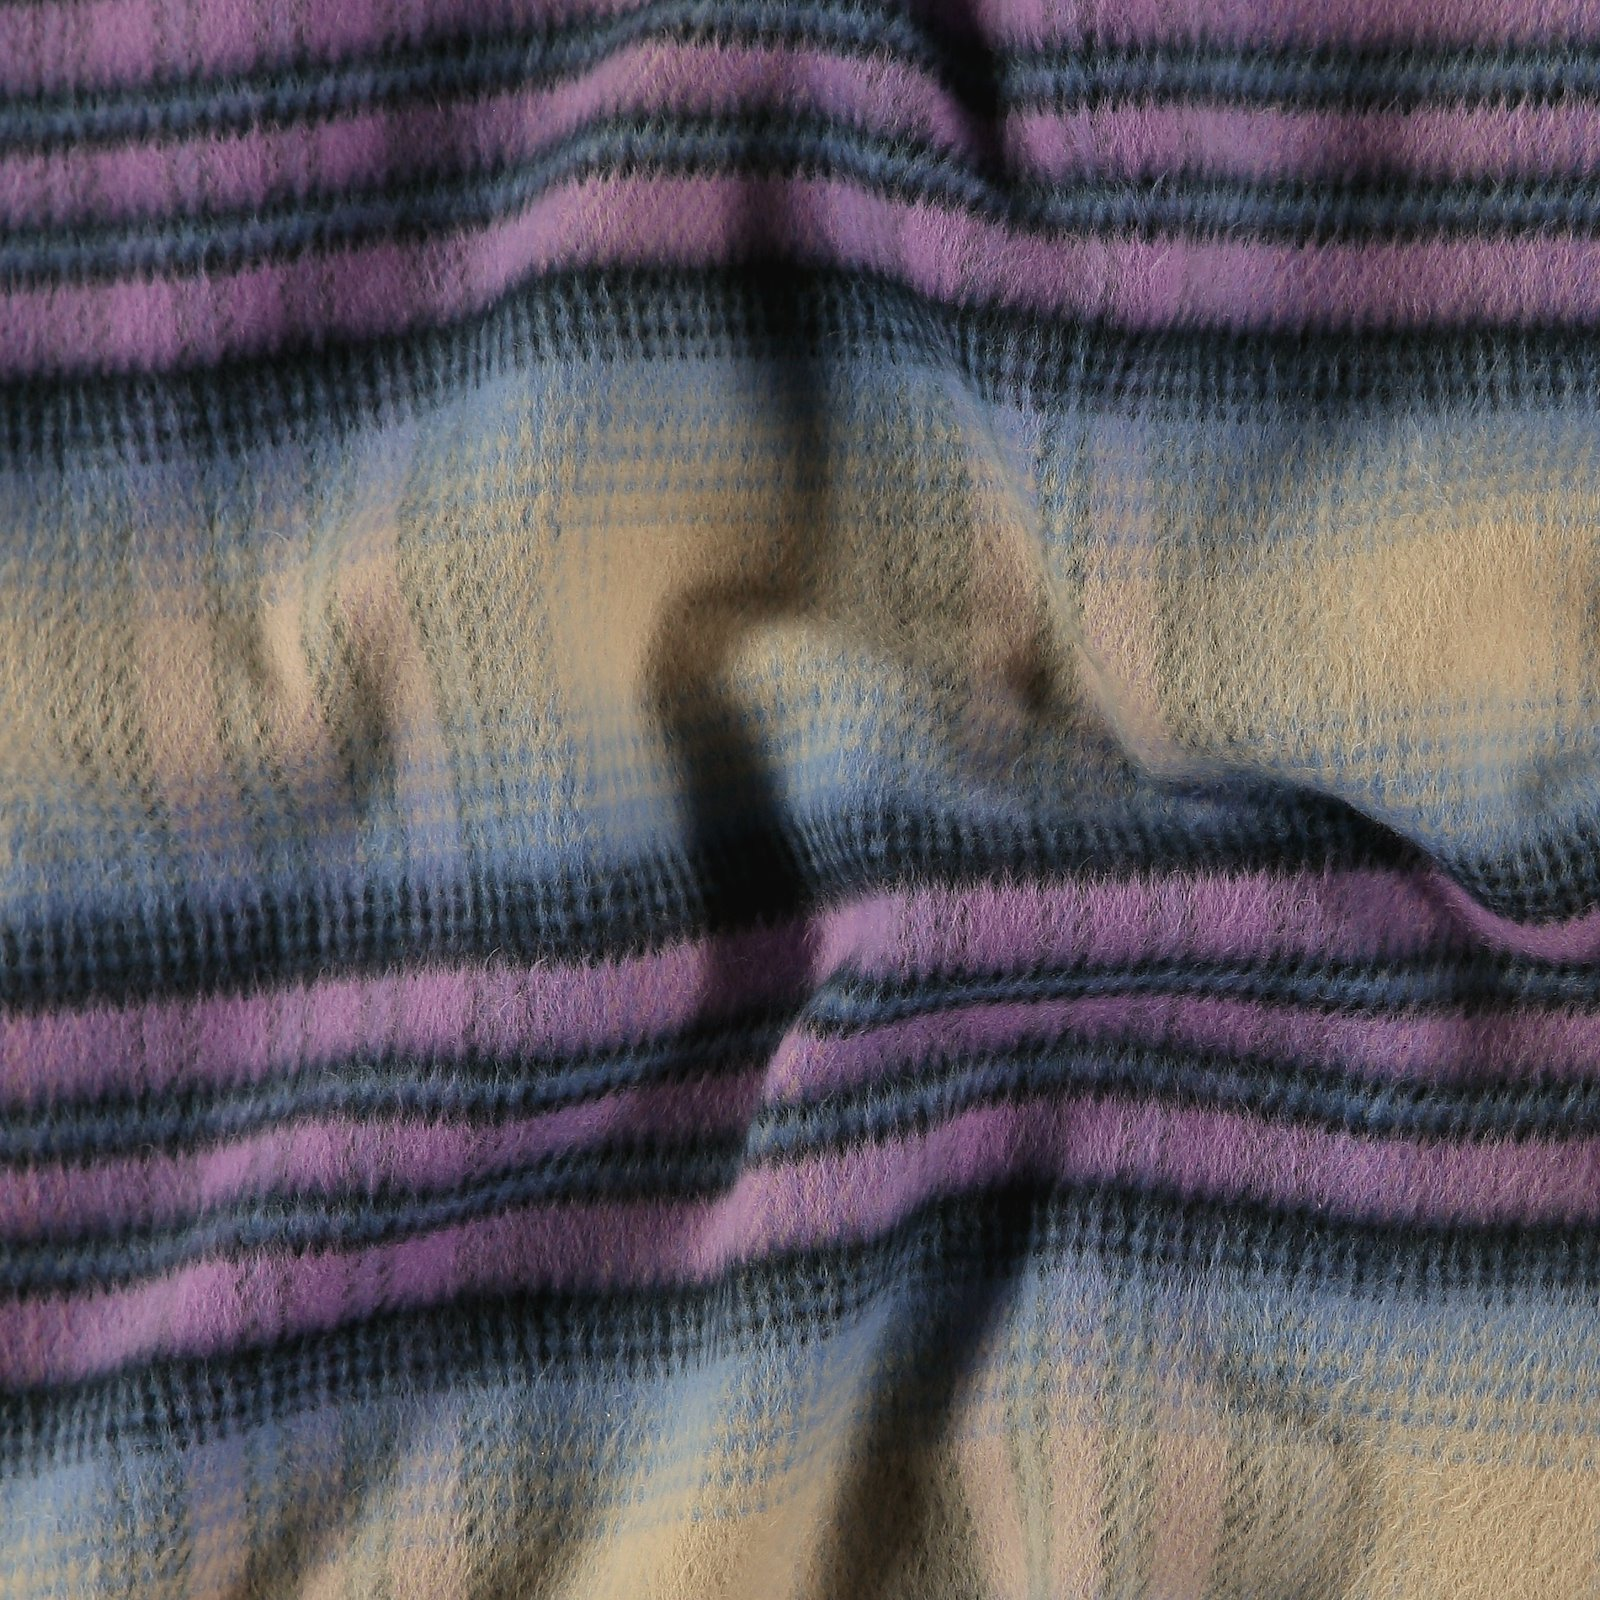 Woven YD check purple/blue brushed surfa